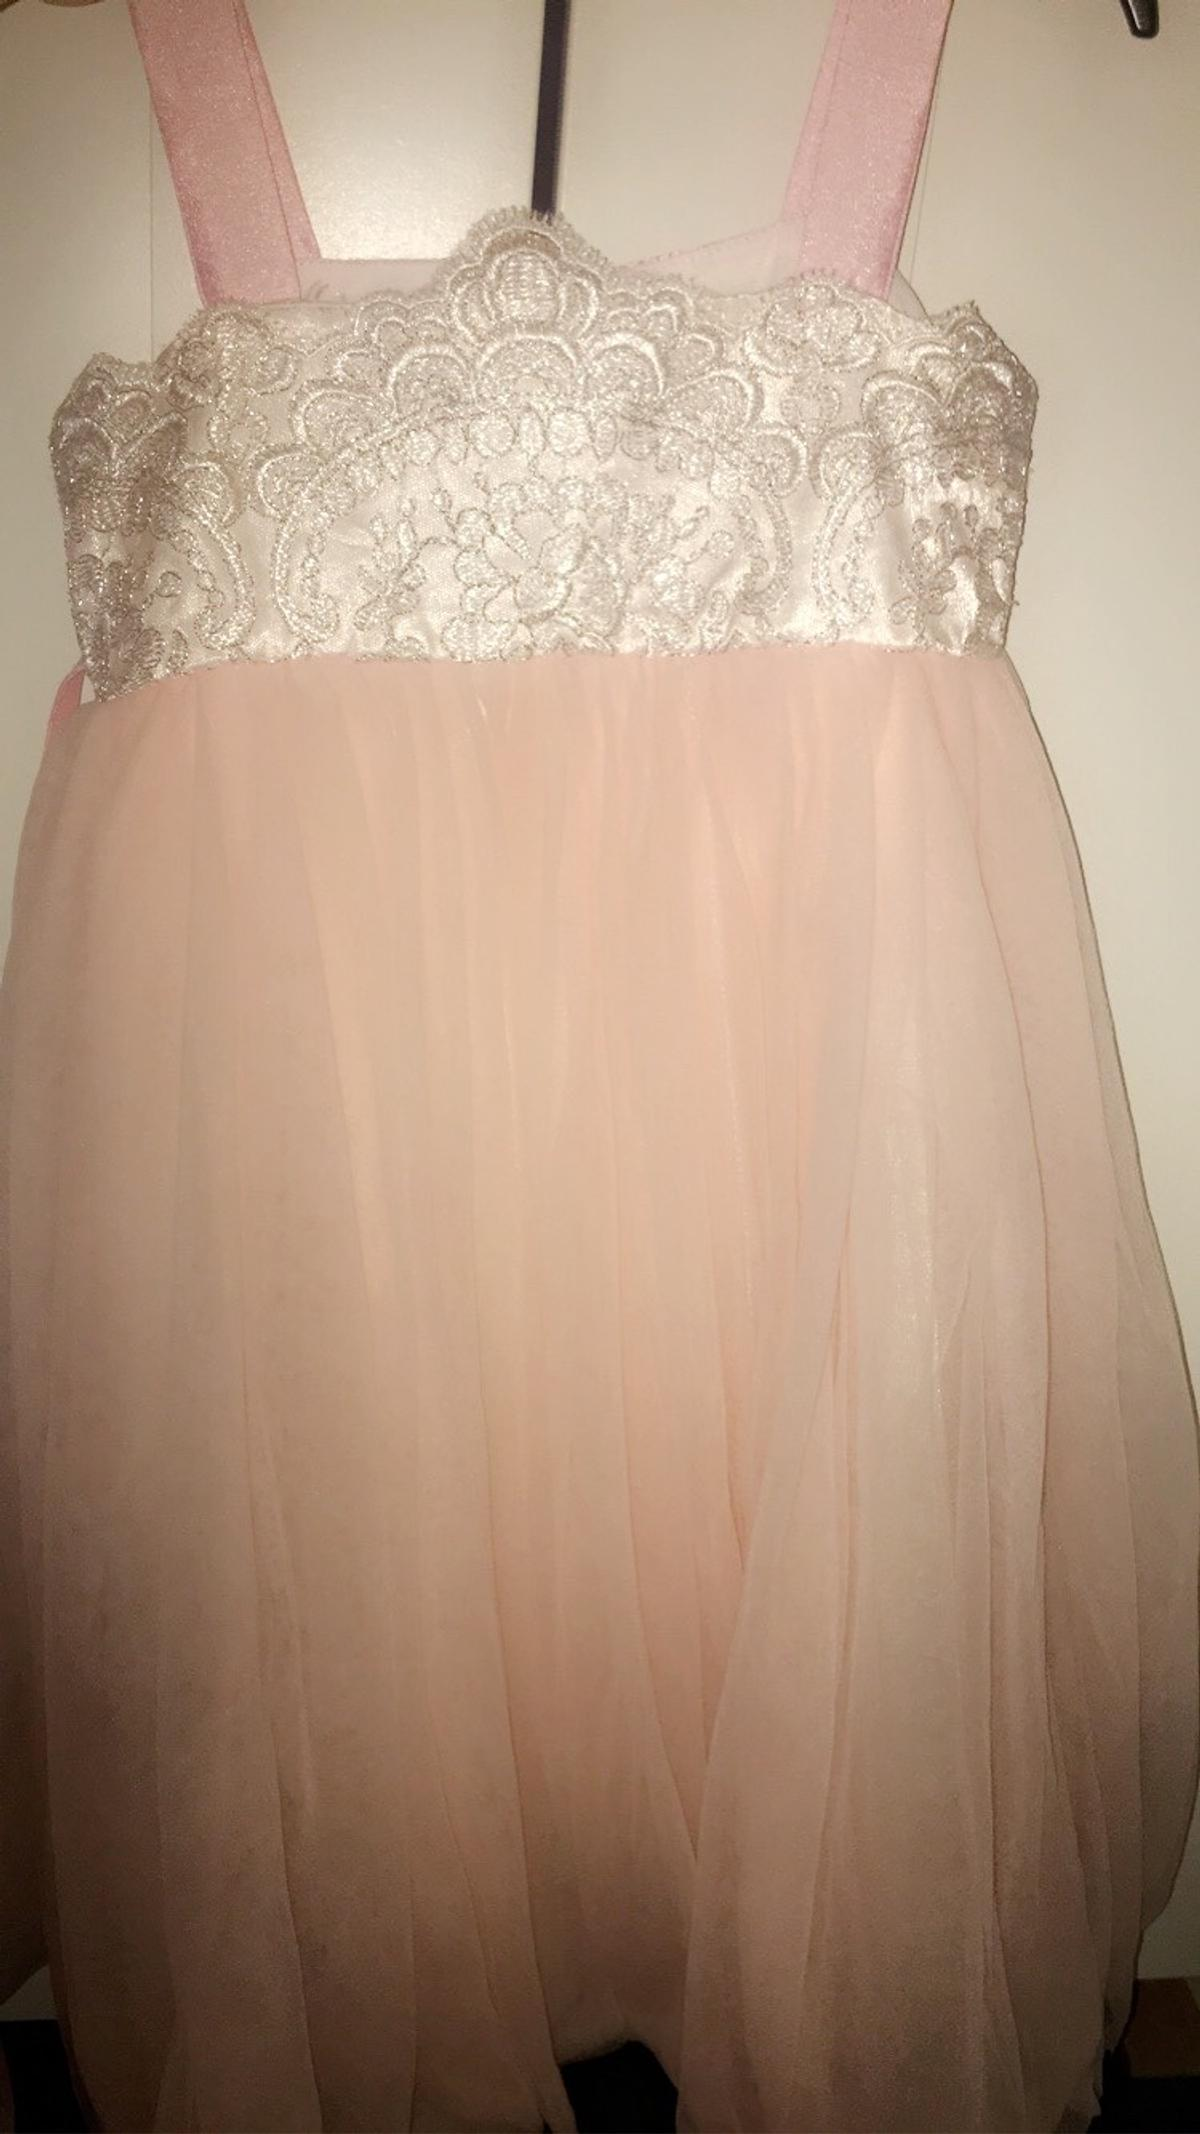 A lovely pink dress;Size 28 Age 4-6. Worn once